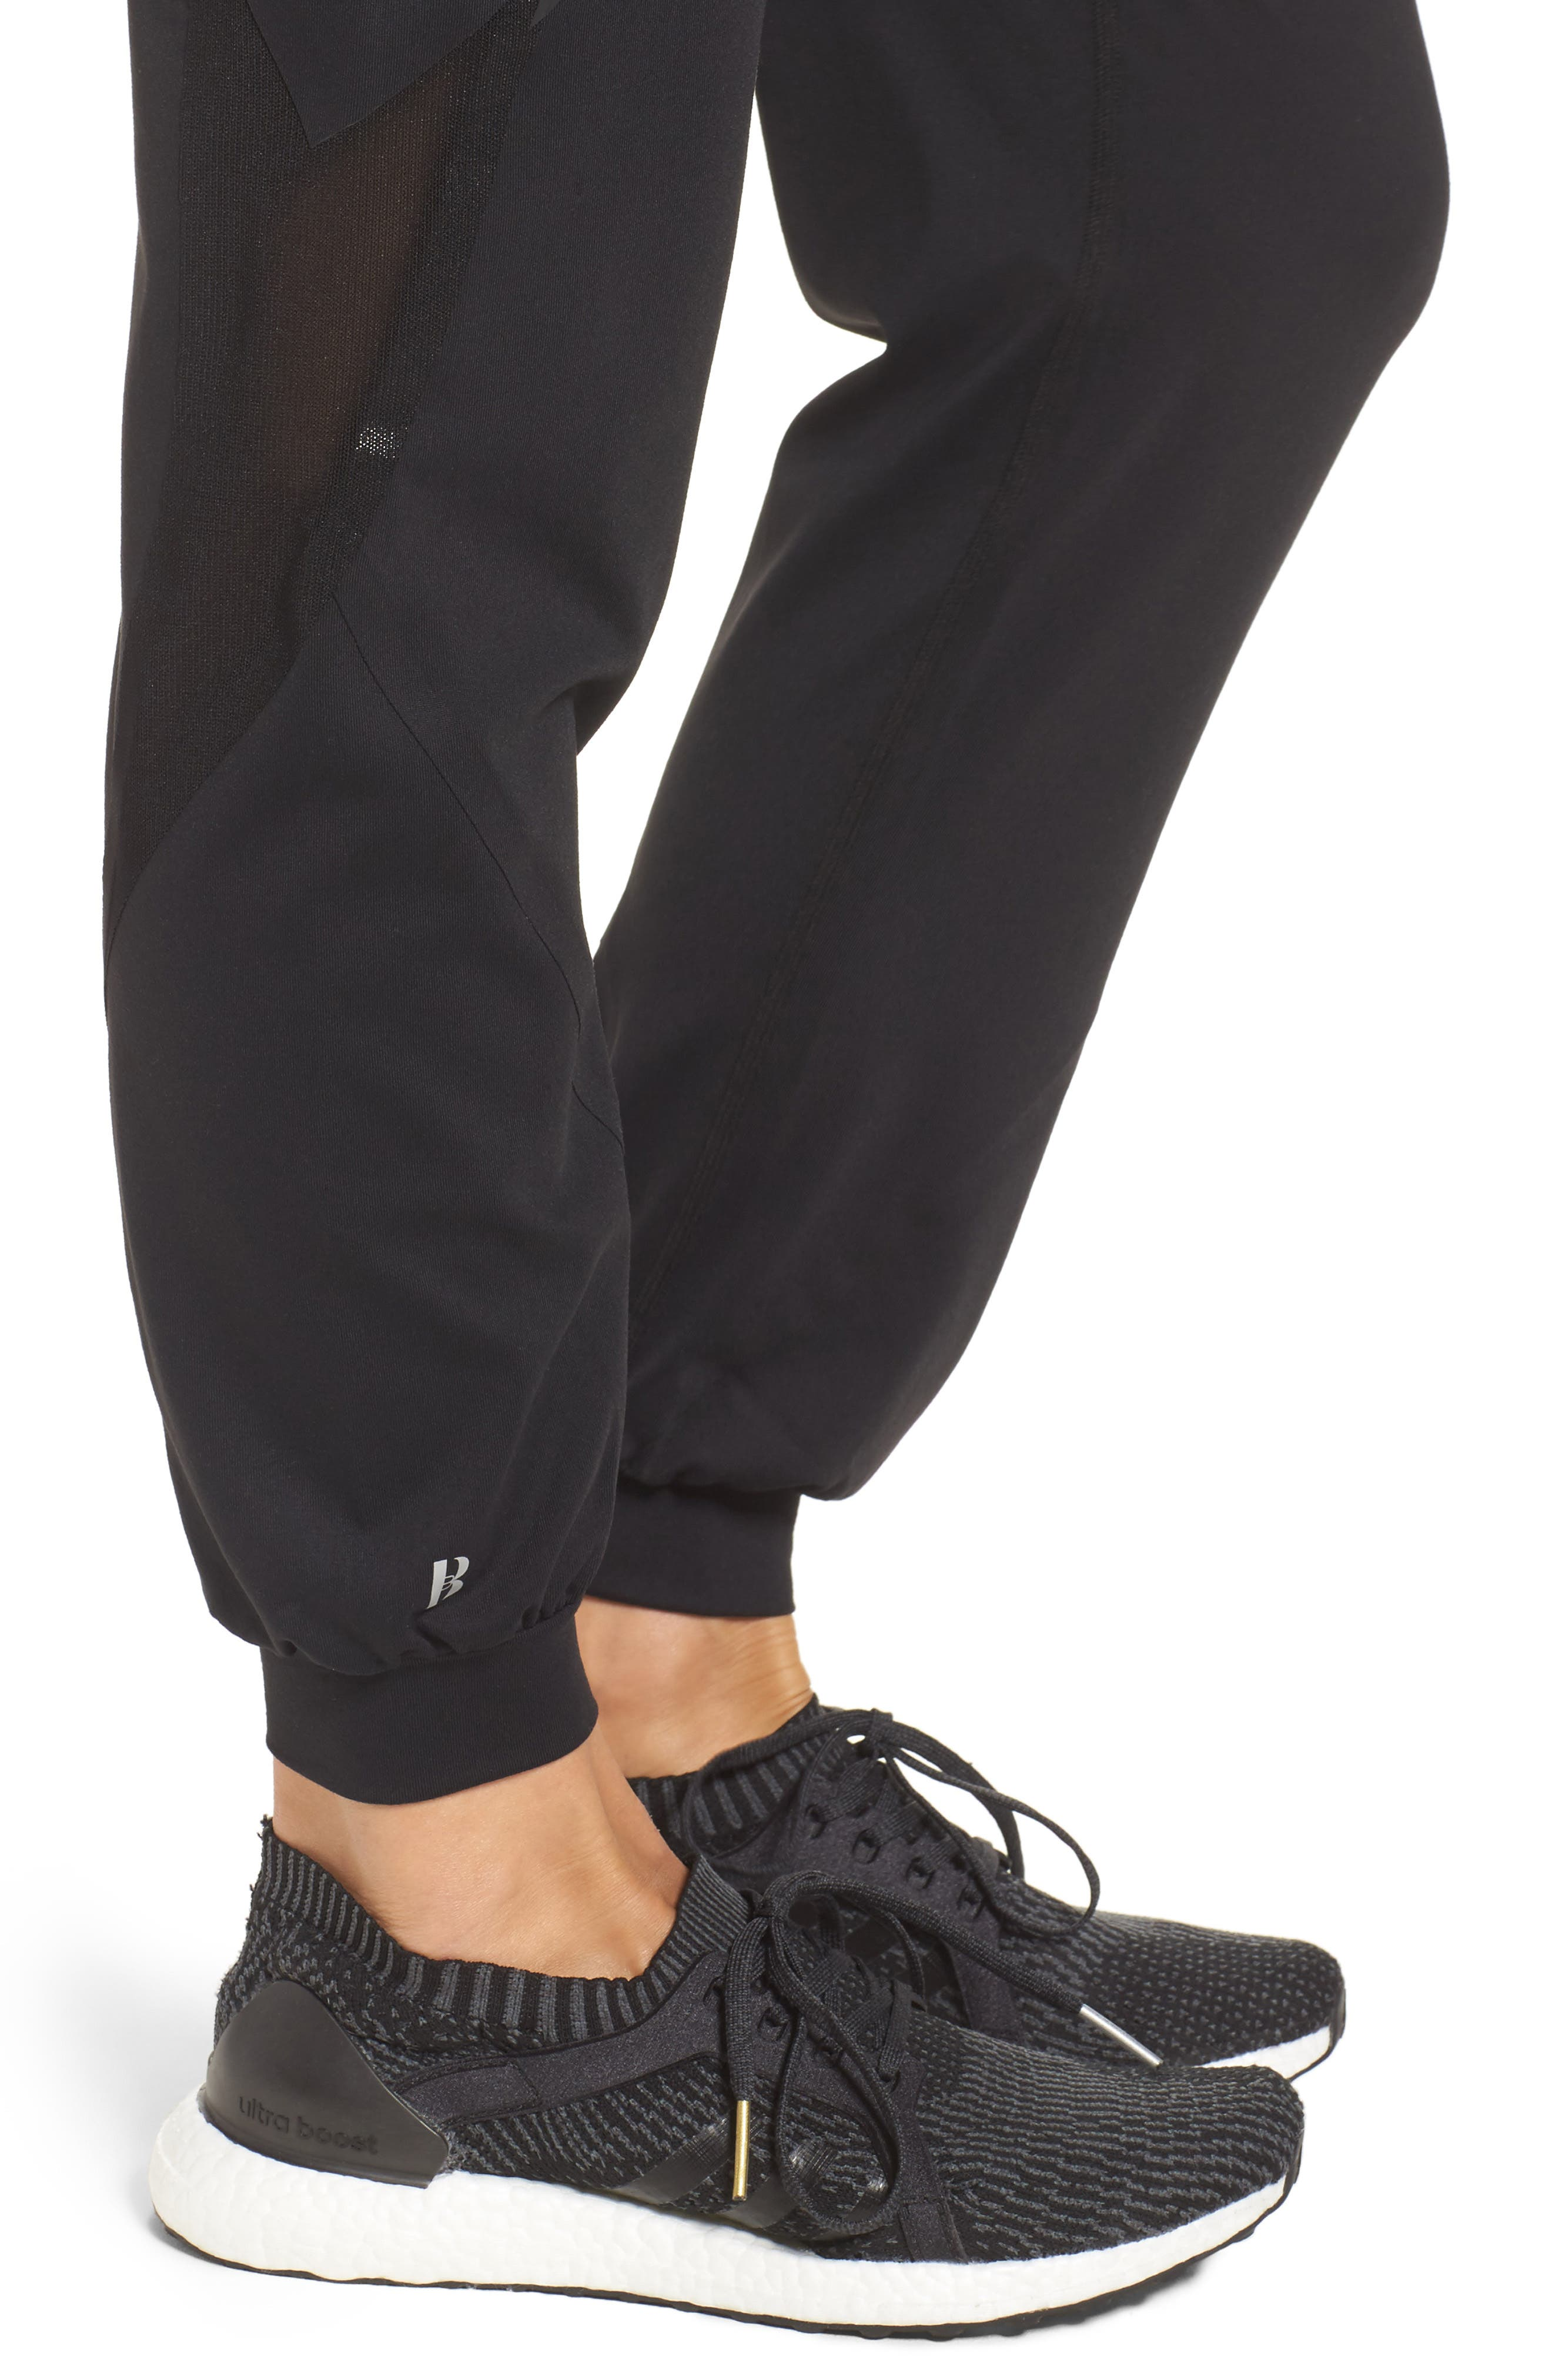 BoomBoom Athletica Track Pants,                             Alternate thumbnail 4, color,                             BLACK